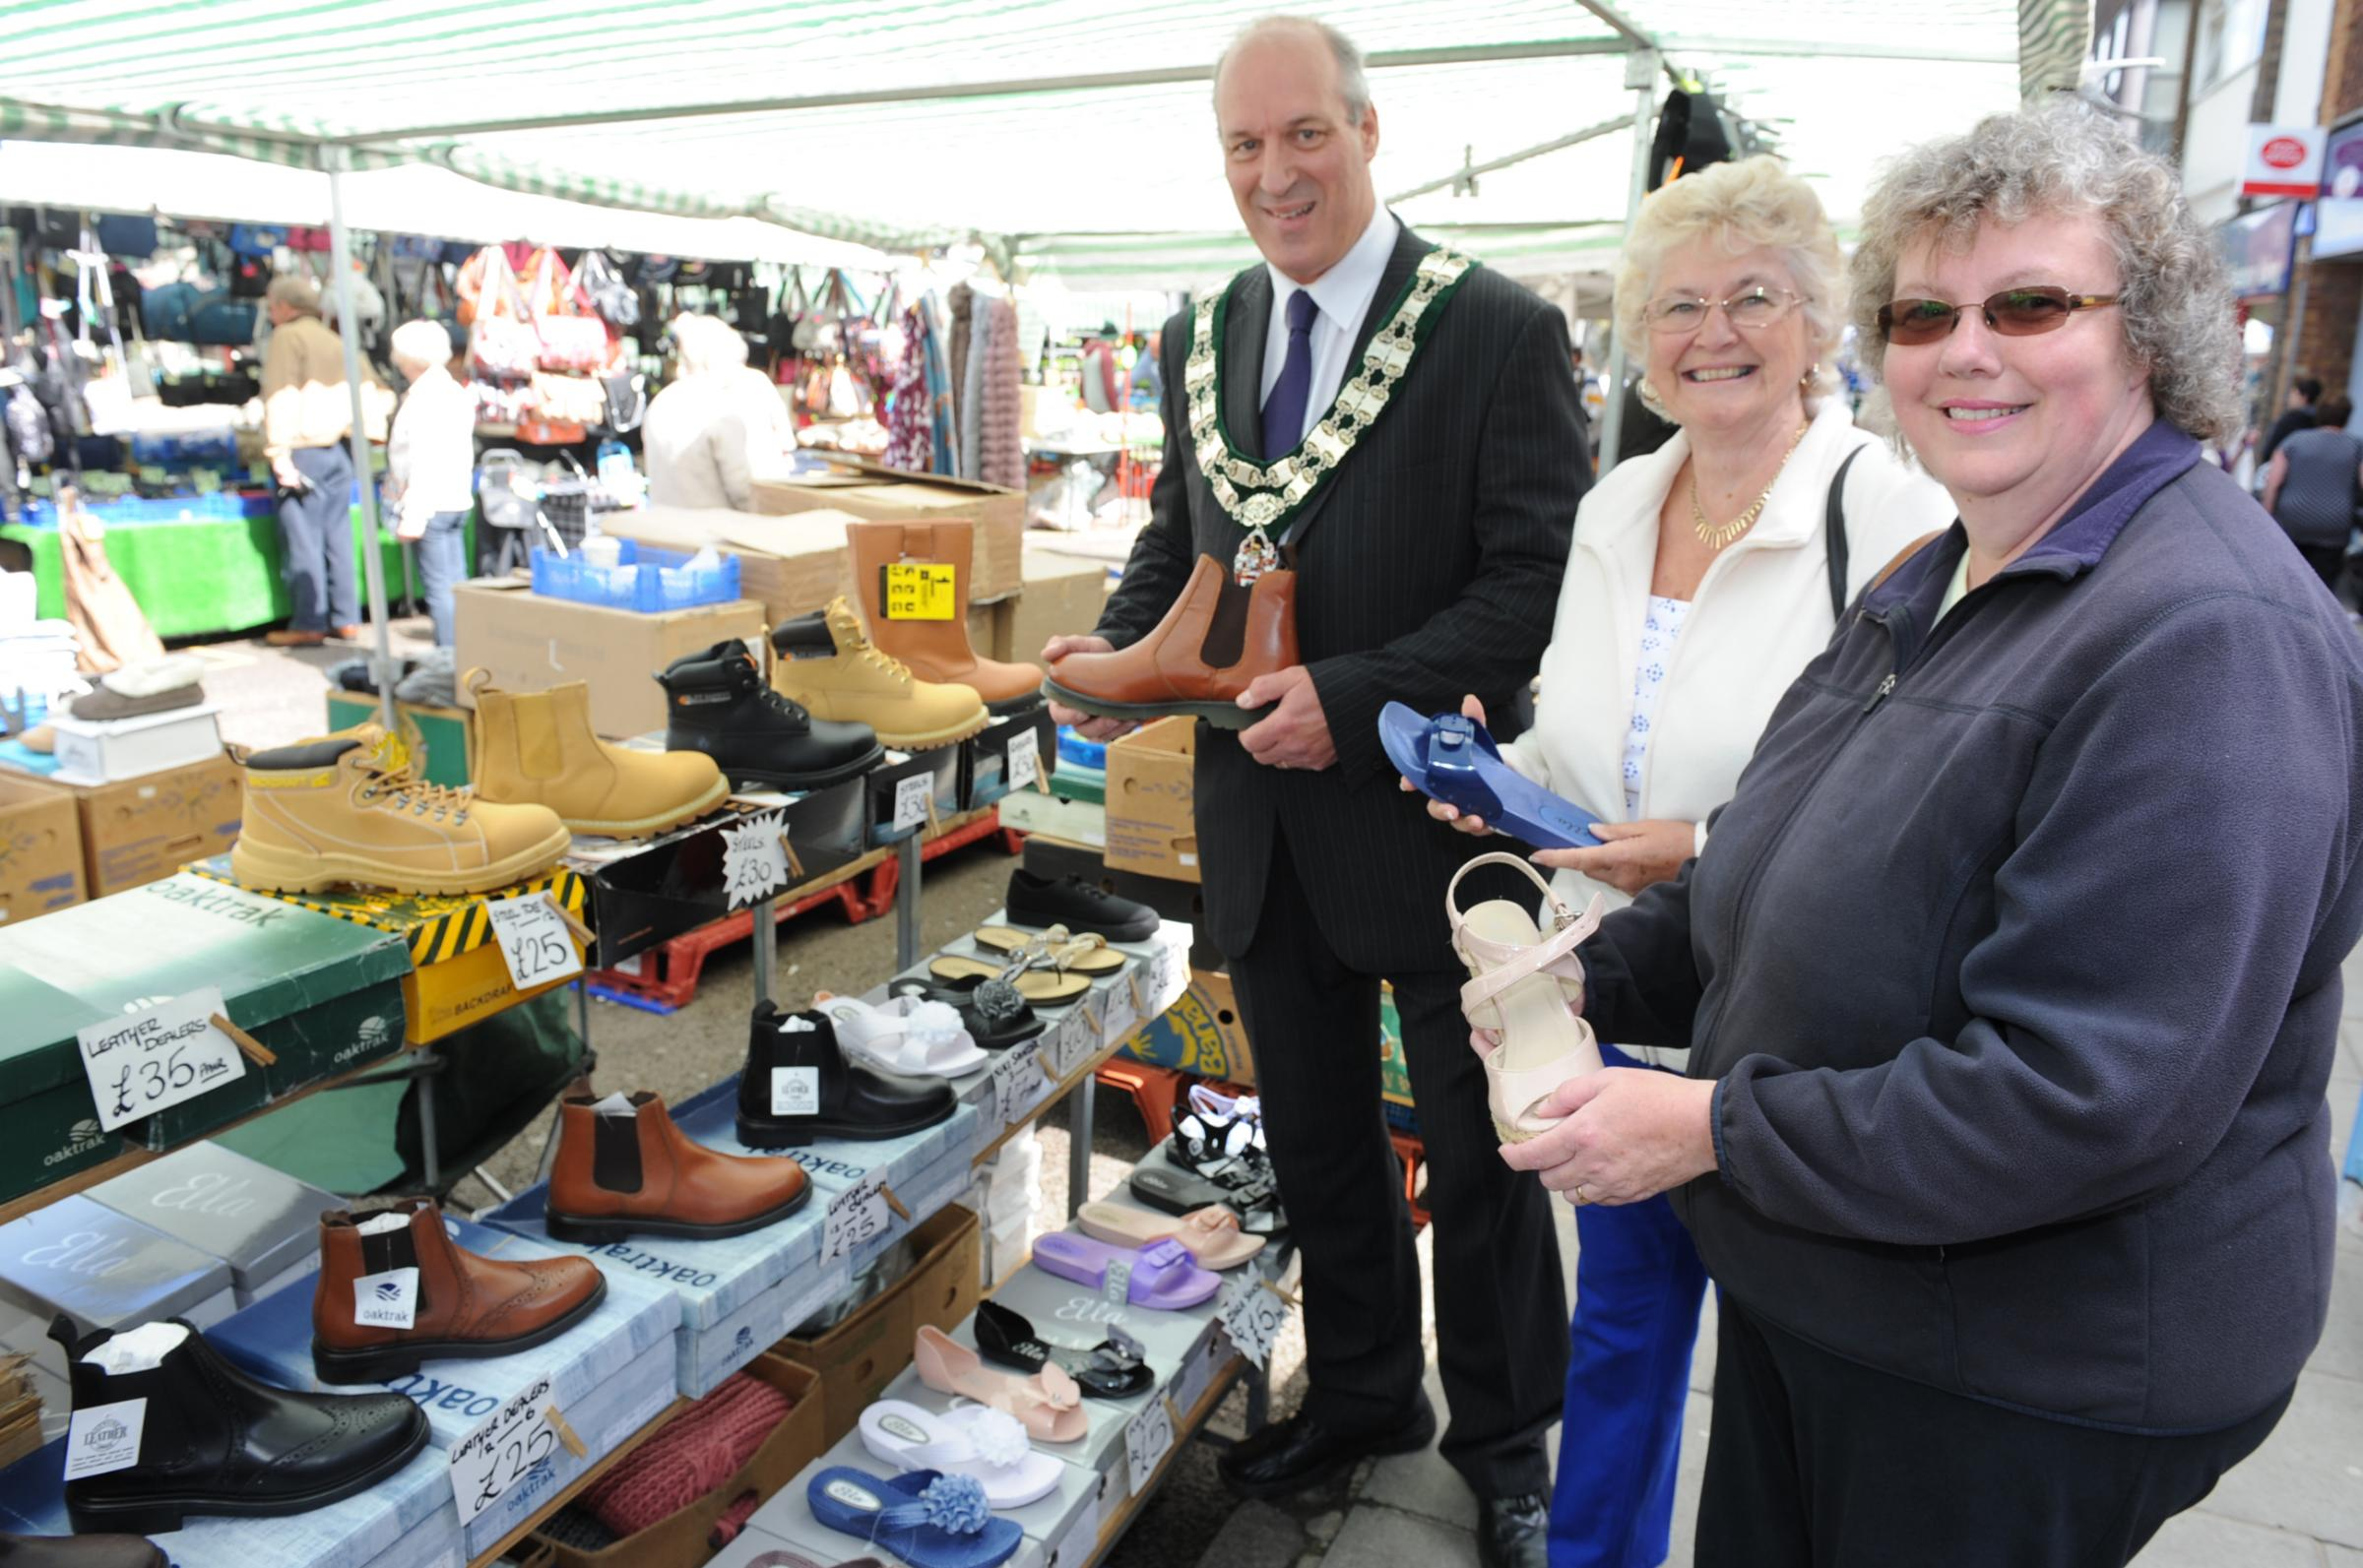 Shoe stall – Eddie Dray, Rayleigh in Bloom chairman Margaret Spencer and environment chairman Cheryl Roe look for bargain footwear